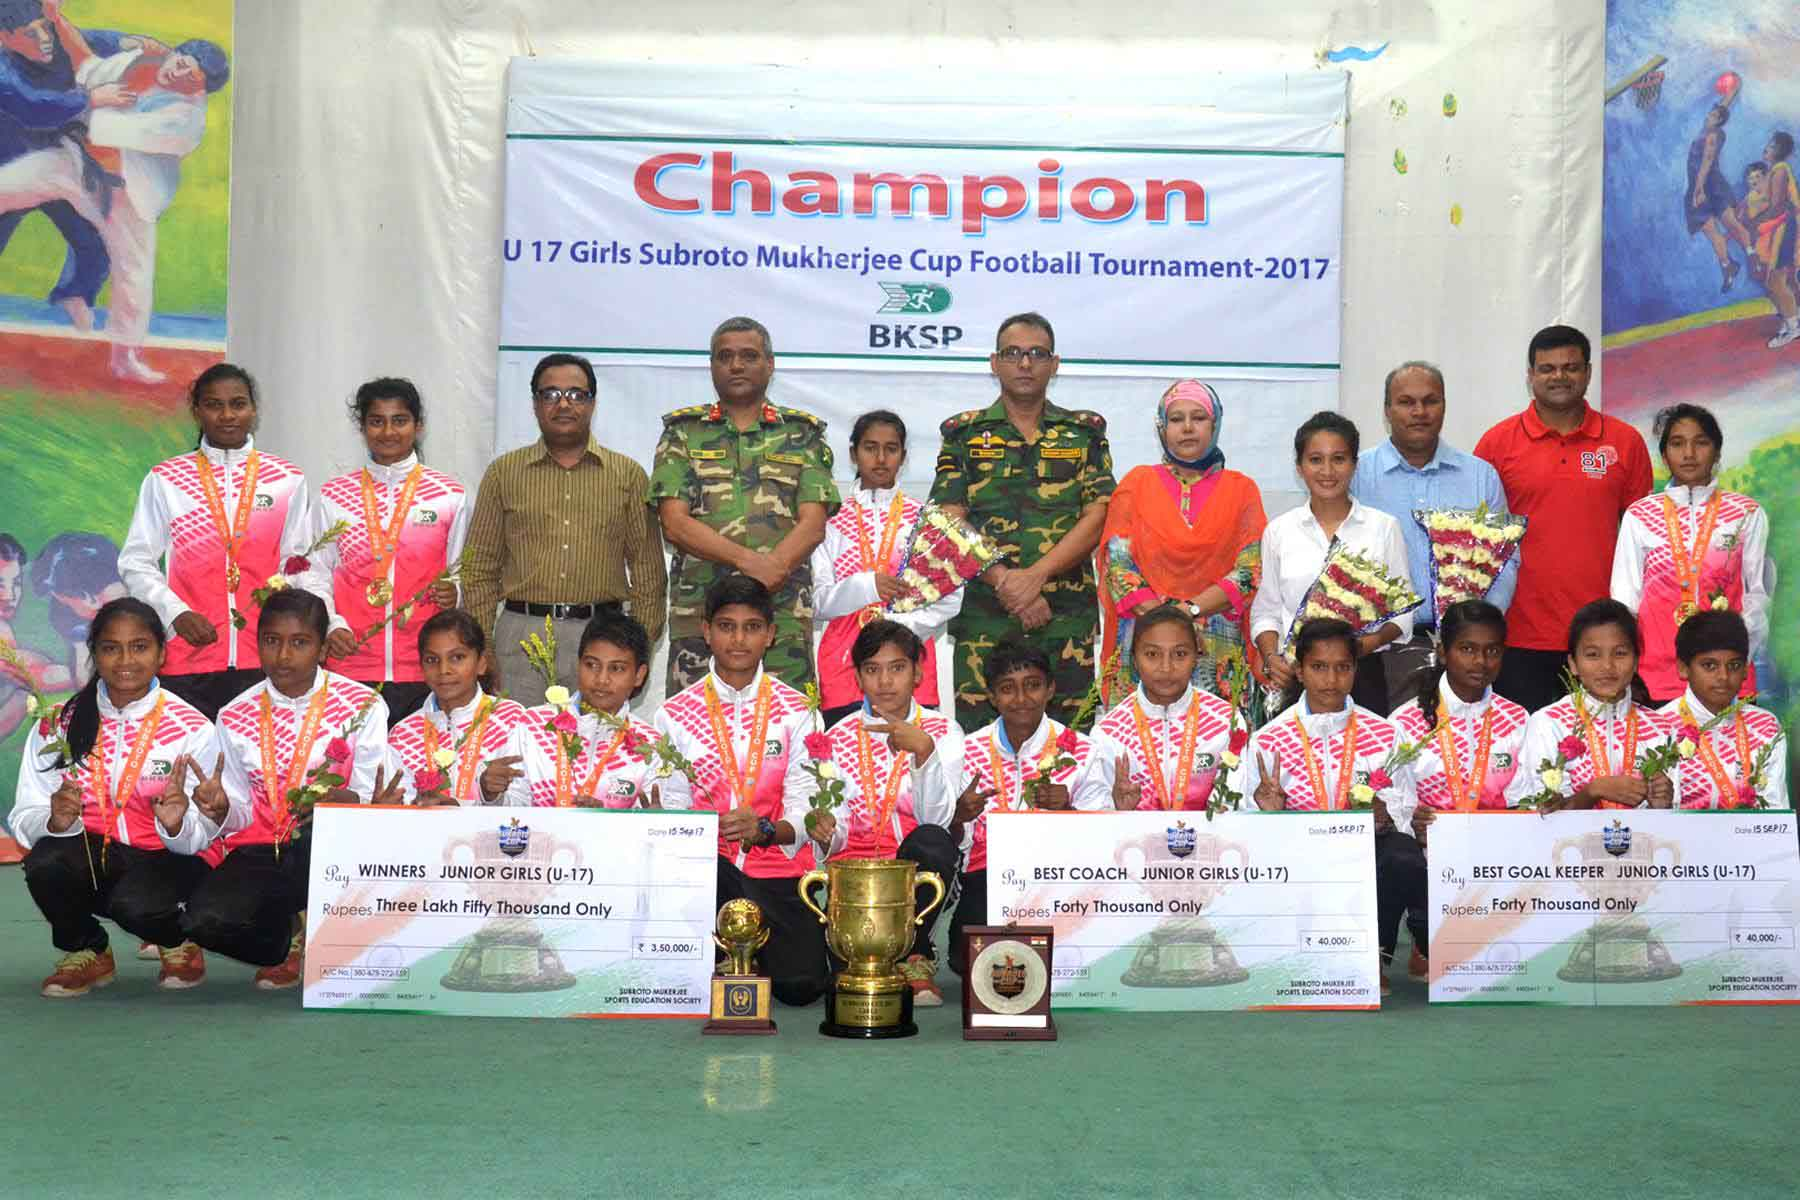 Members of BKSP Under-17 Women's Football team, the champions of the Subroto Mukherjee Cup Under-17 Women's International Football Tournament with the chief guest Director General of BKSP Brigadier General Md Shamsur Rahman and the other officials of BKSP pose for a photo session at BKSP in Savar on Wednesday. BKSP accorded a reception to BKSP Under-17 Women's Football team, which emerged as the champions of the Subroto Mukherjee Cup Under-17 Women's International Football Tournament at New Delhi in India recently.